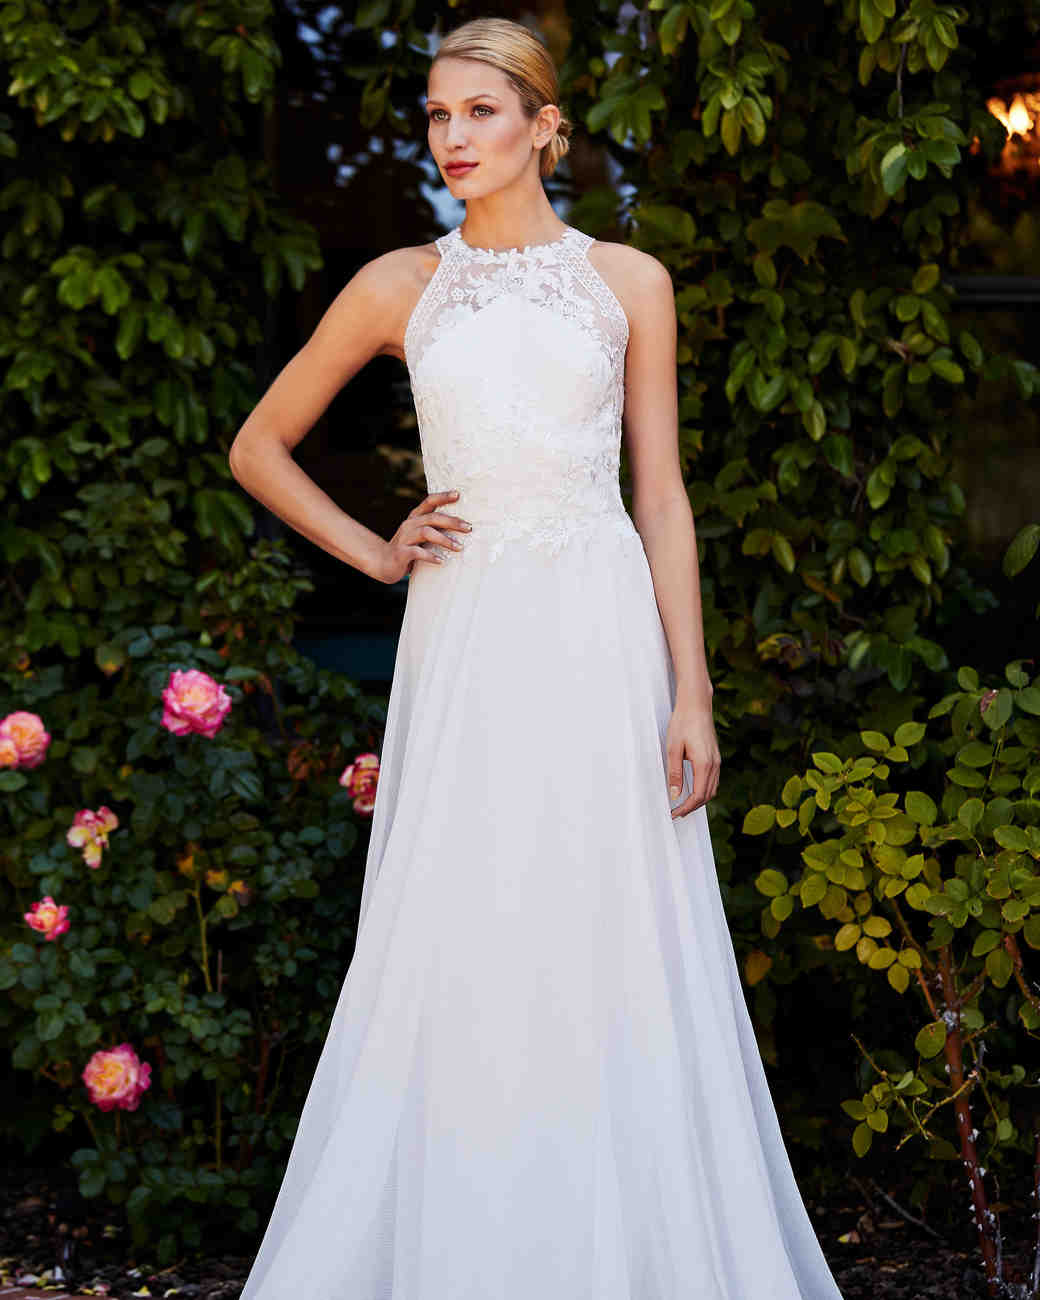 tadashi shoji wedding dress fall 2018 high neck a-line